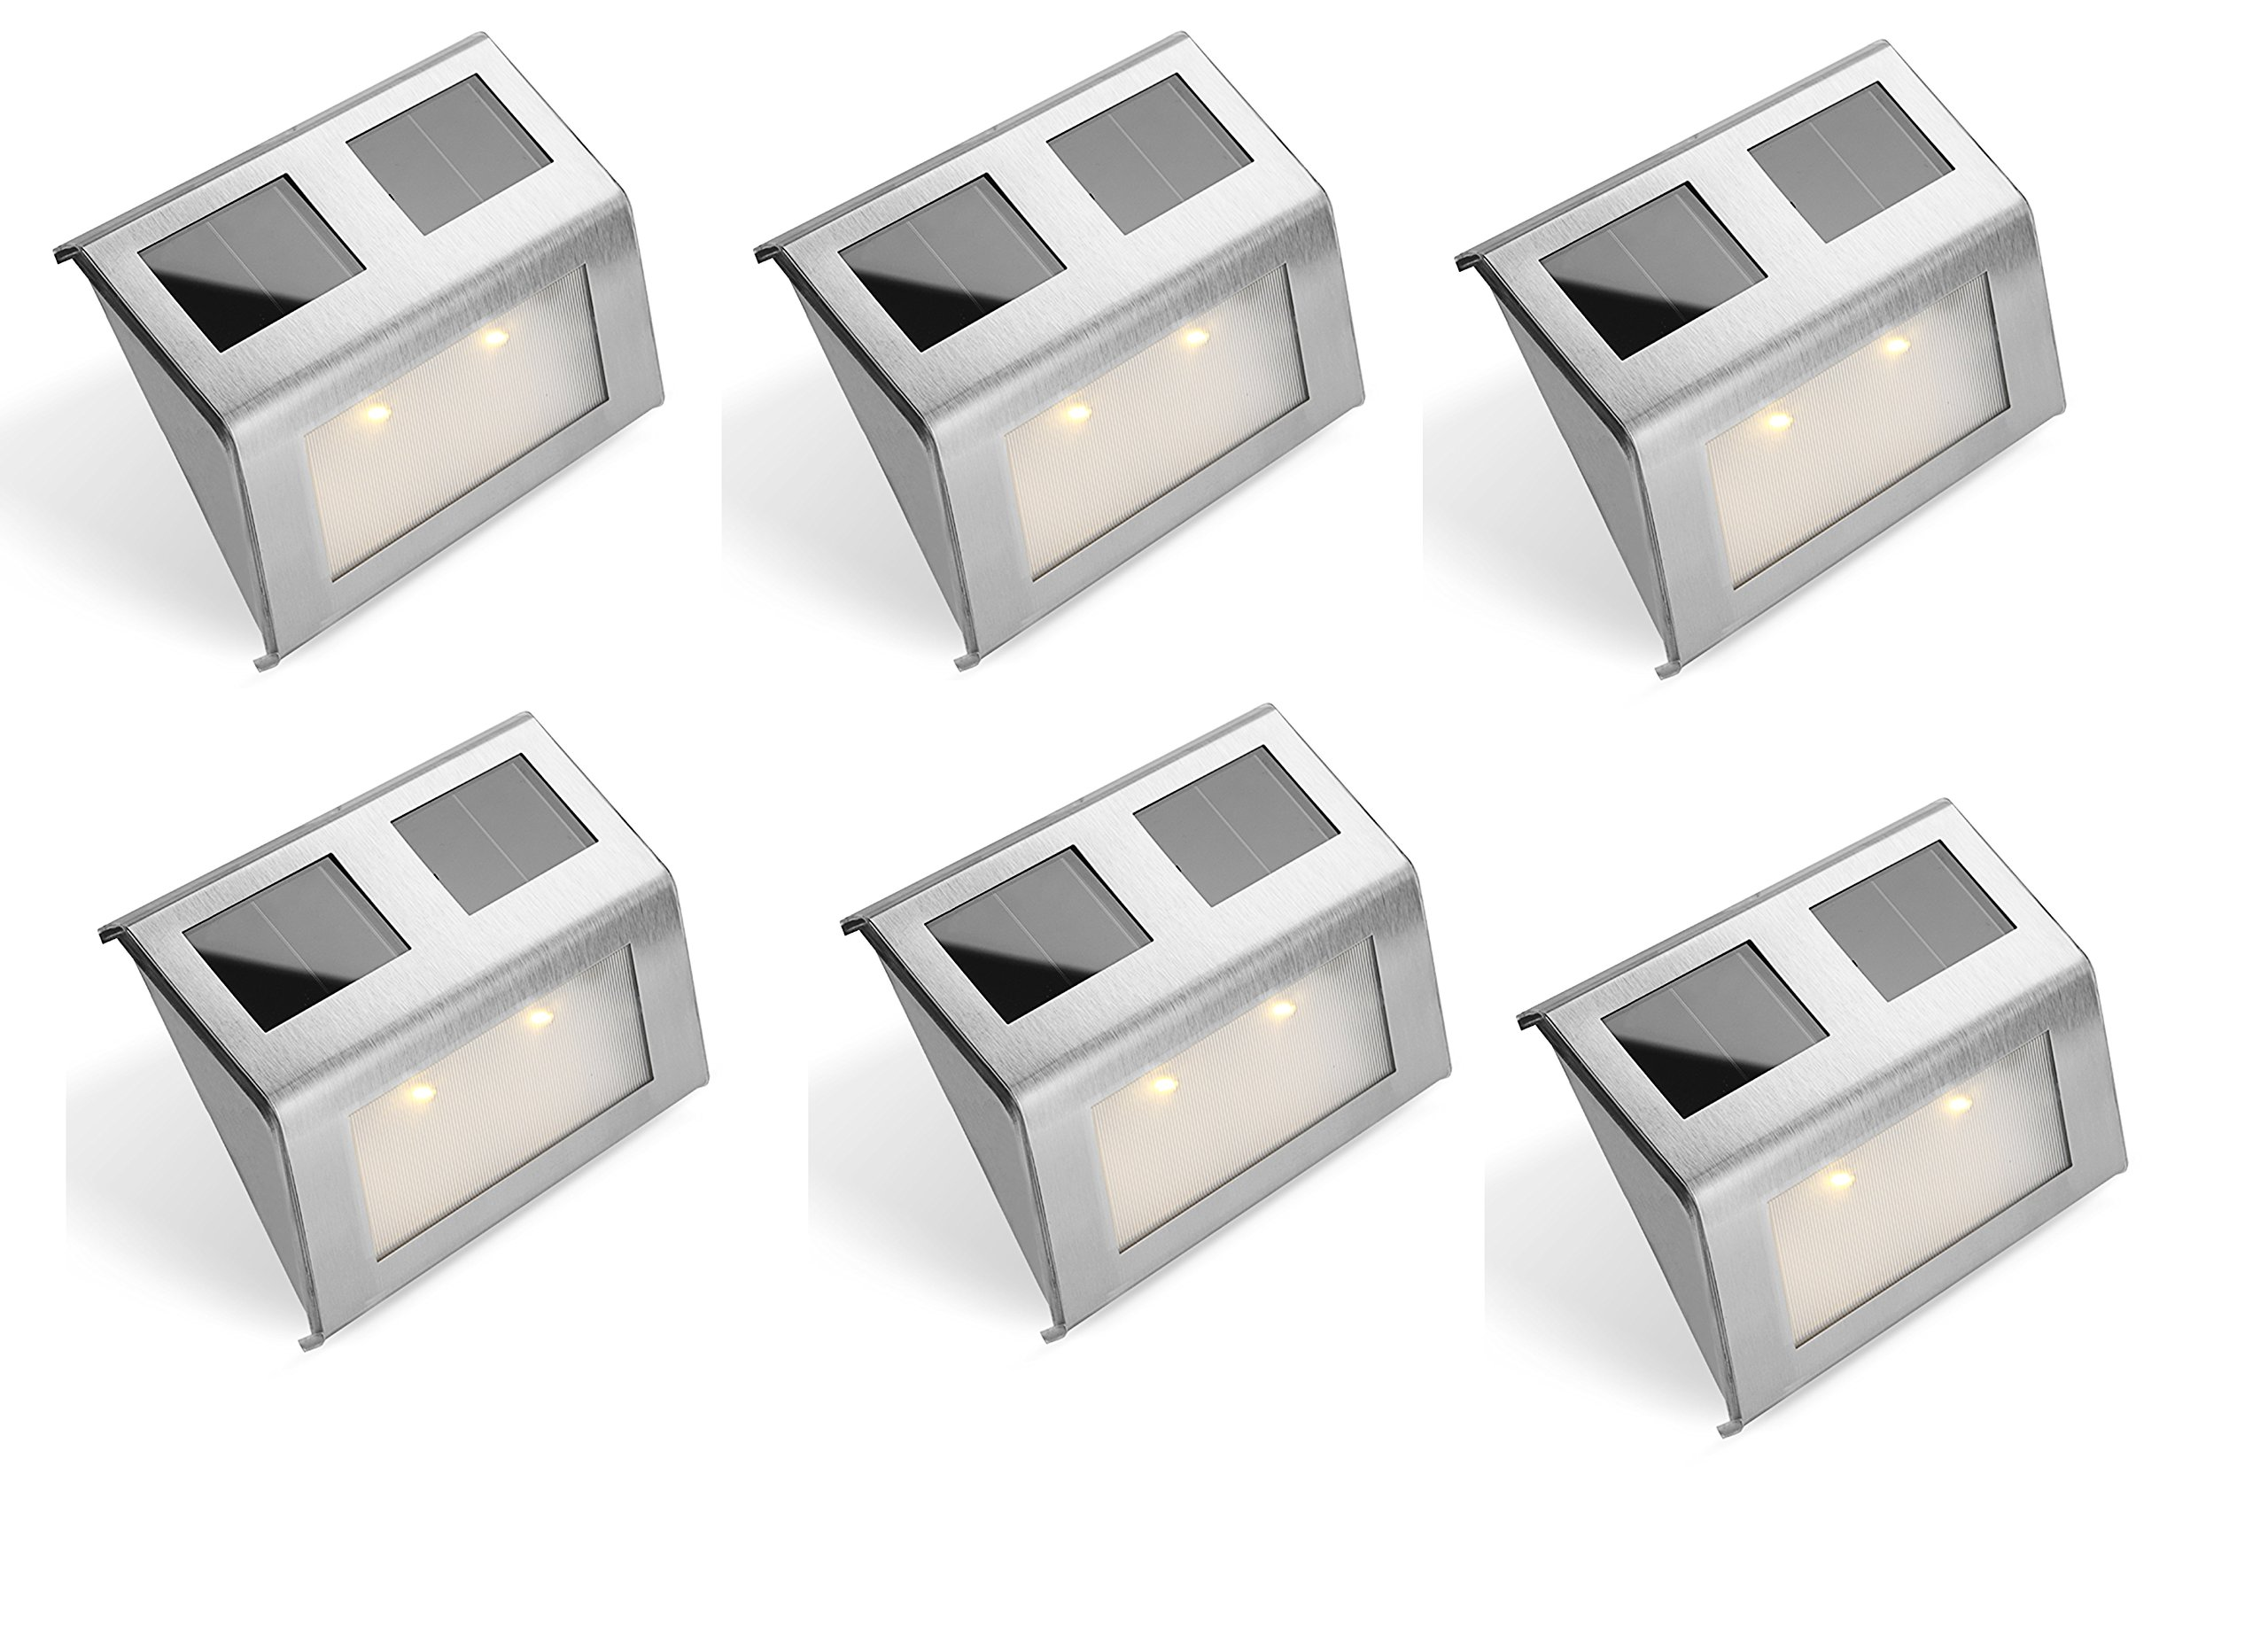 Bear Motion (TM) Solar Powered LED Light for Garden, Fence, Walkways Stairways, Path Pathway Lights - 6 Packs